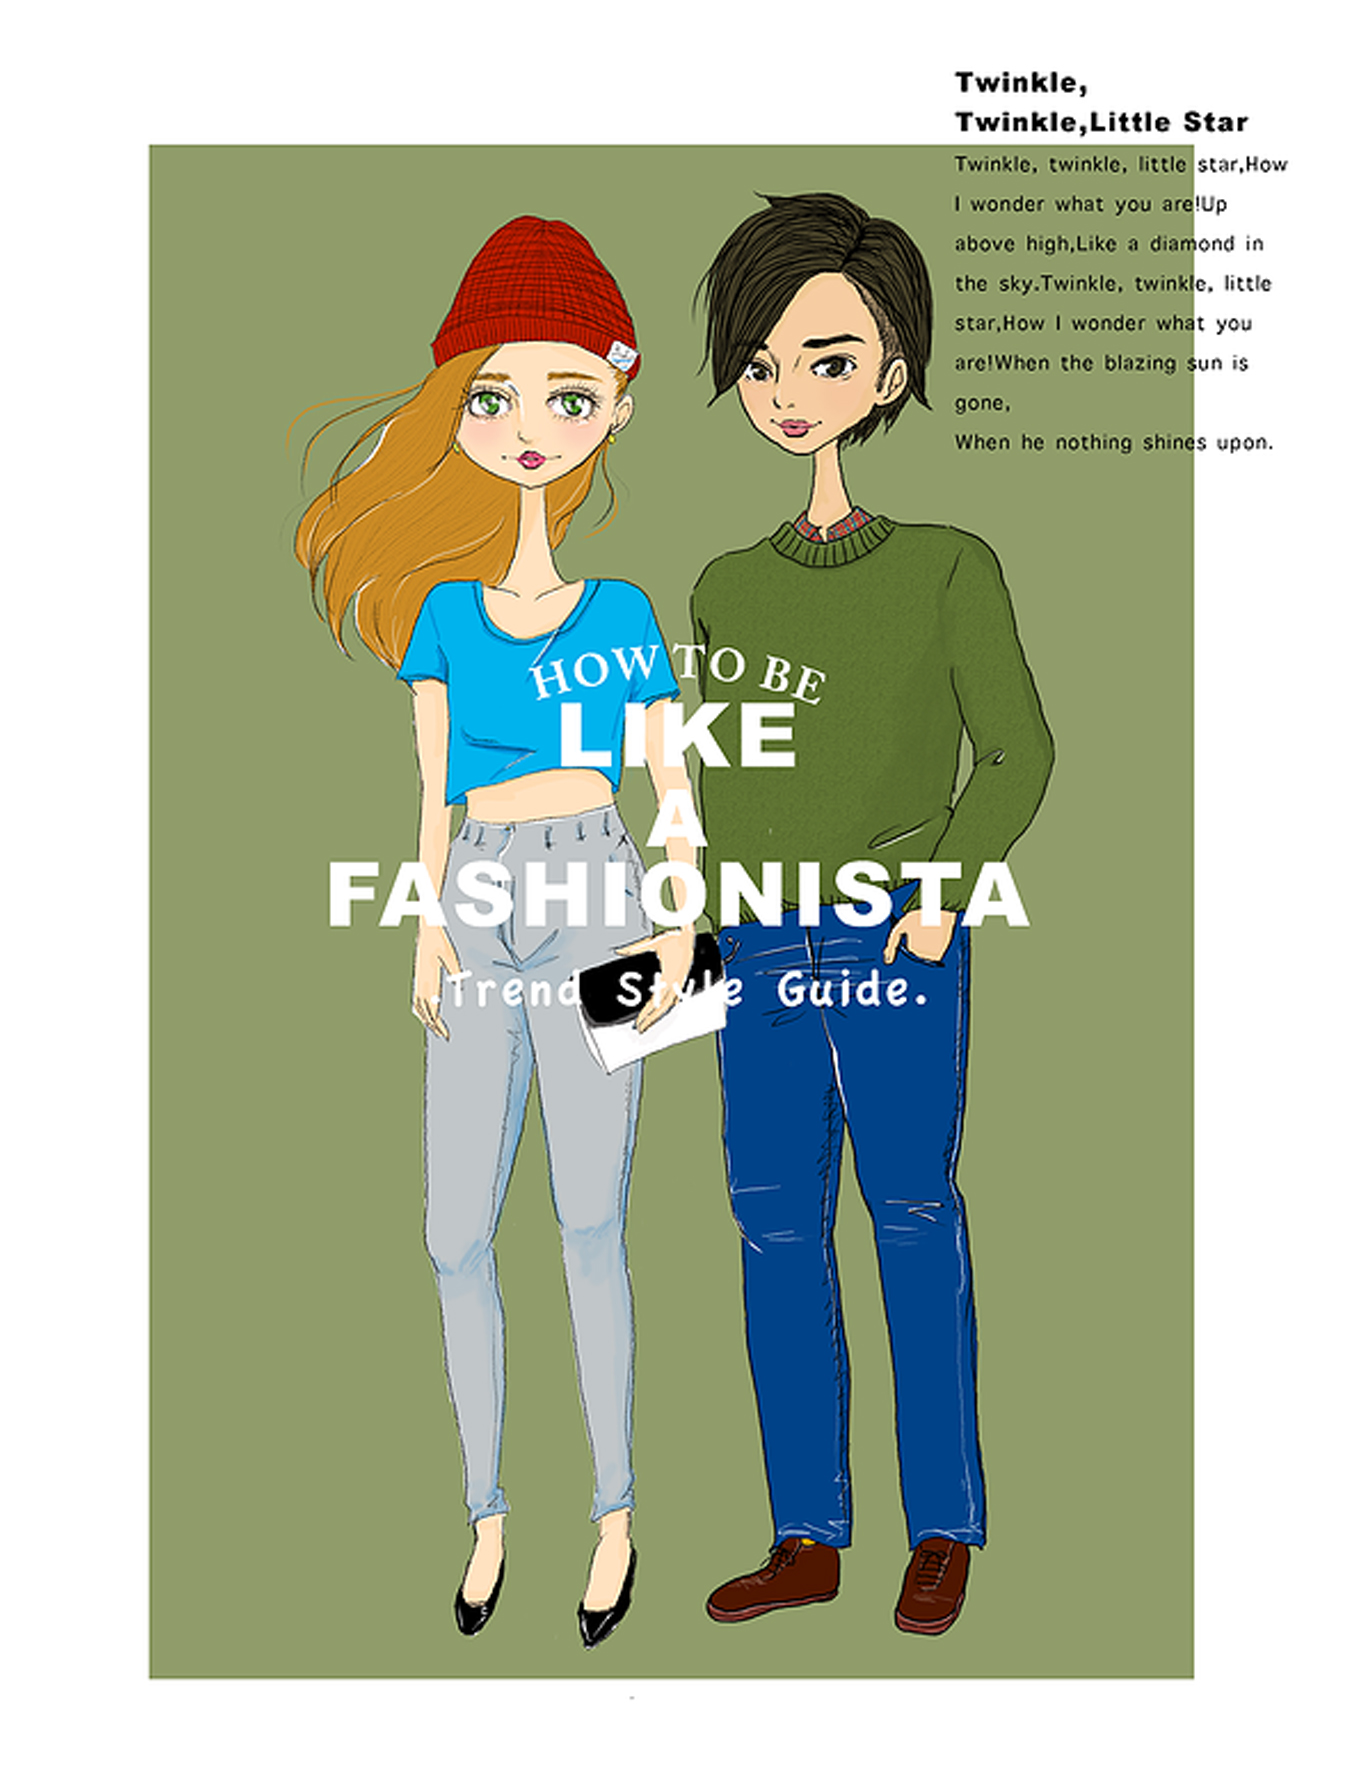 HOW TO BE LIKE A FASHIONISTA